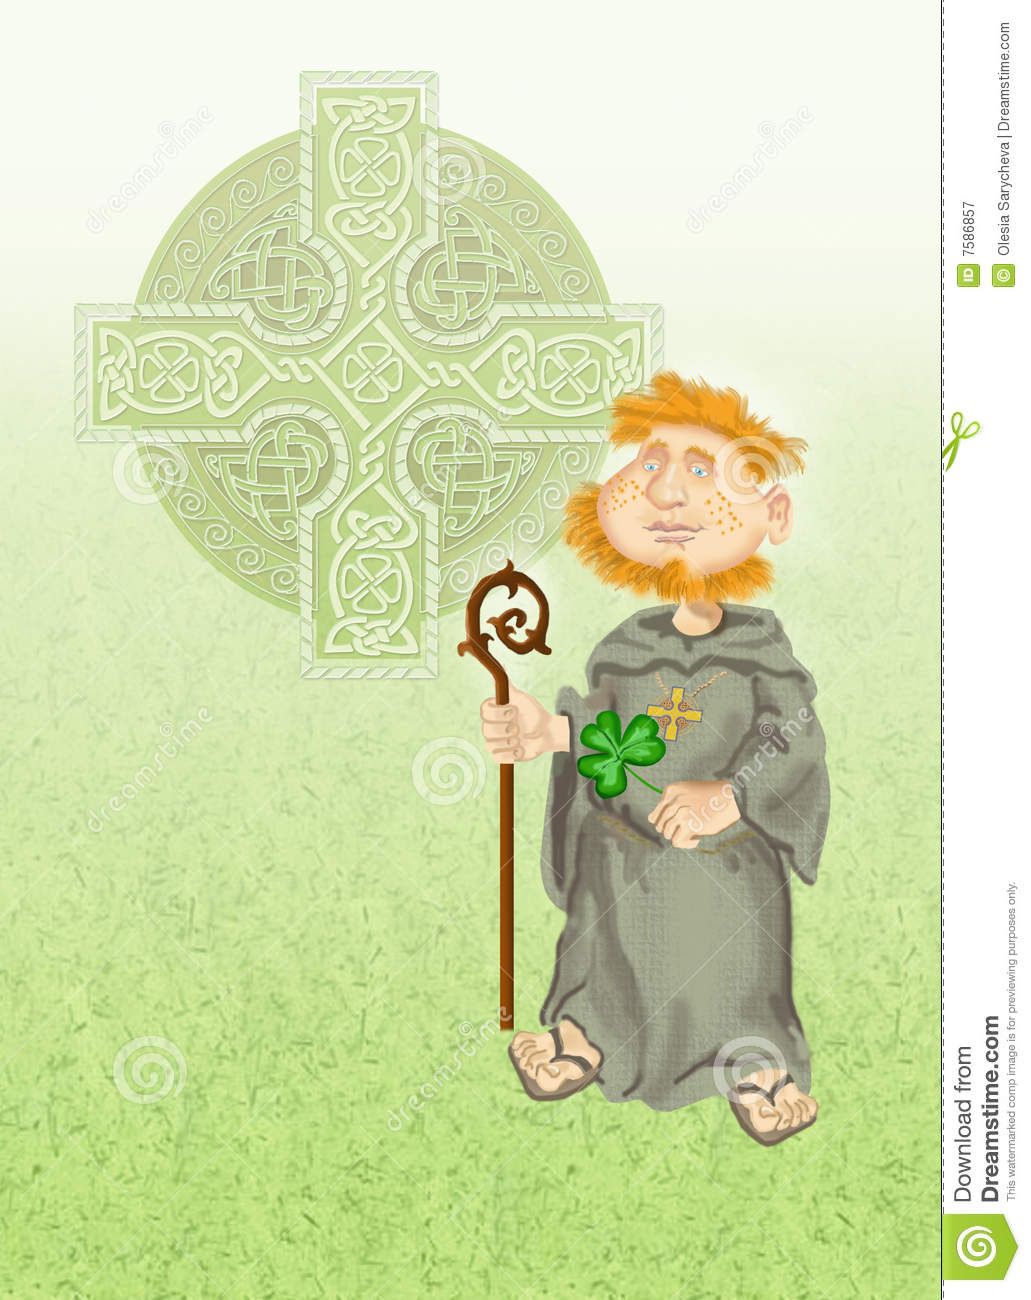 Celtic Cross With Shamrock Shamrock and celtic cross